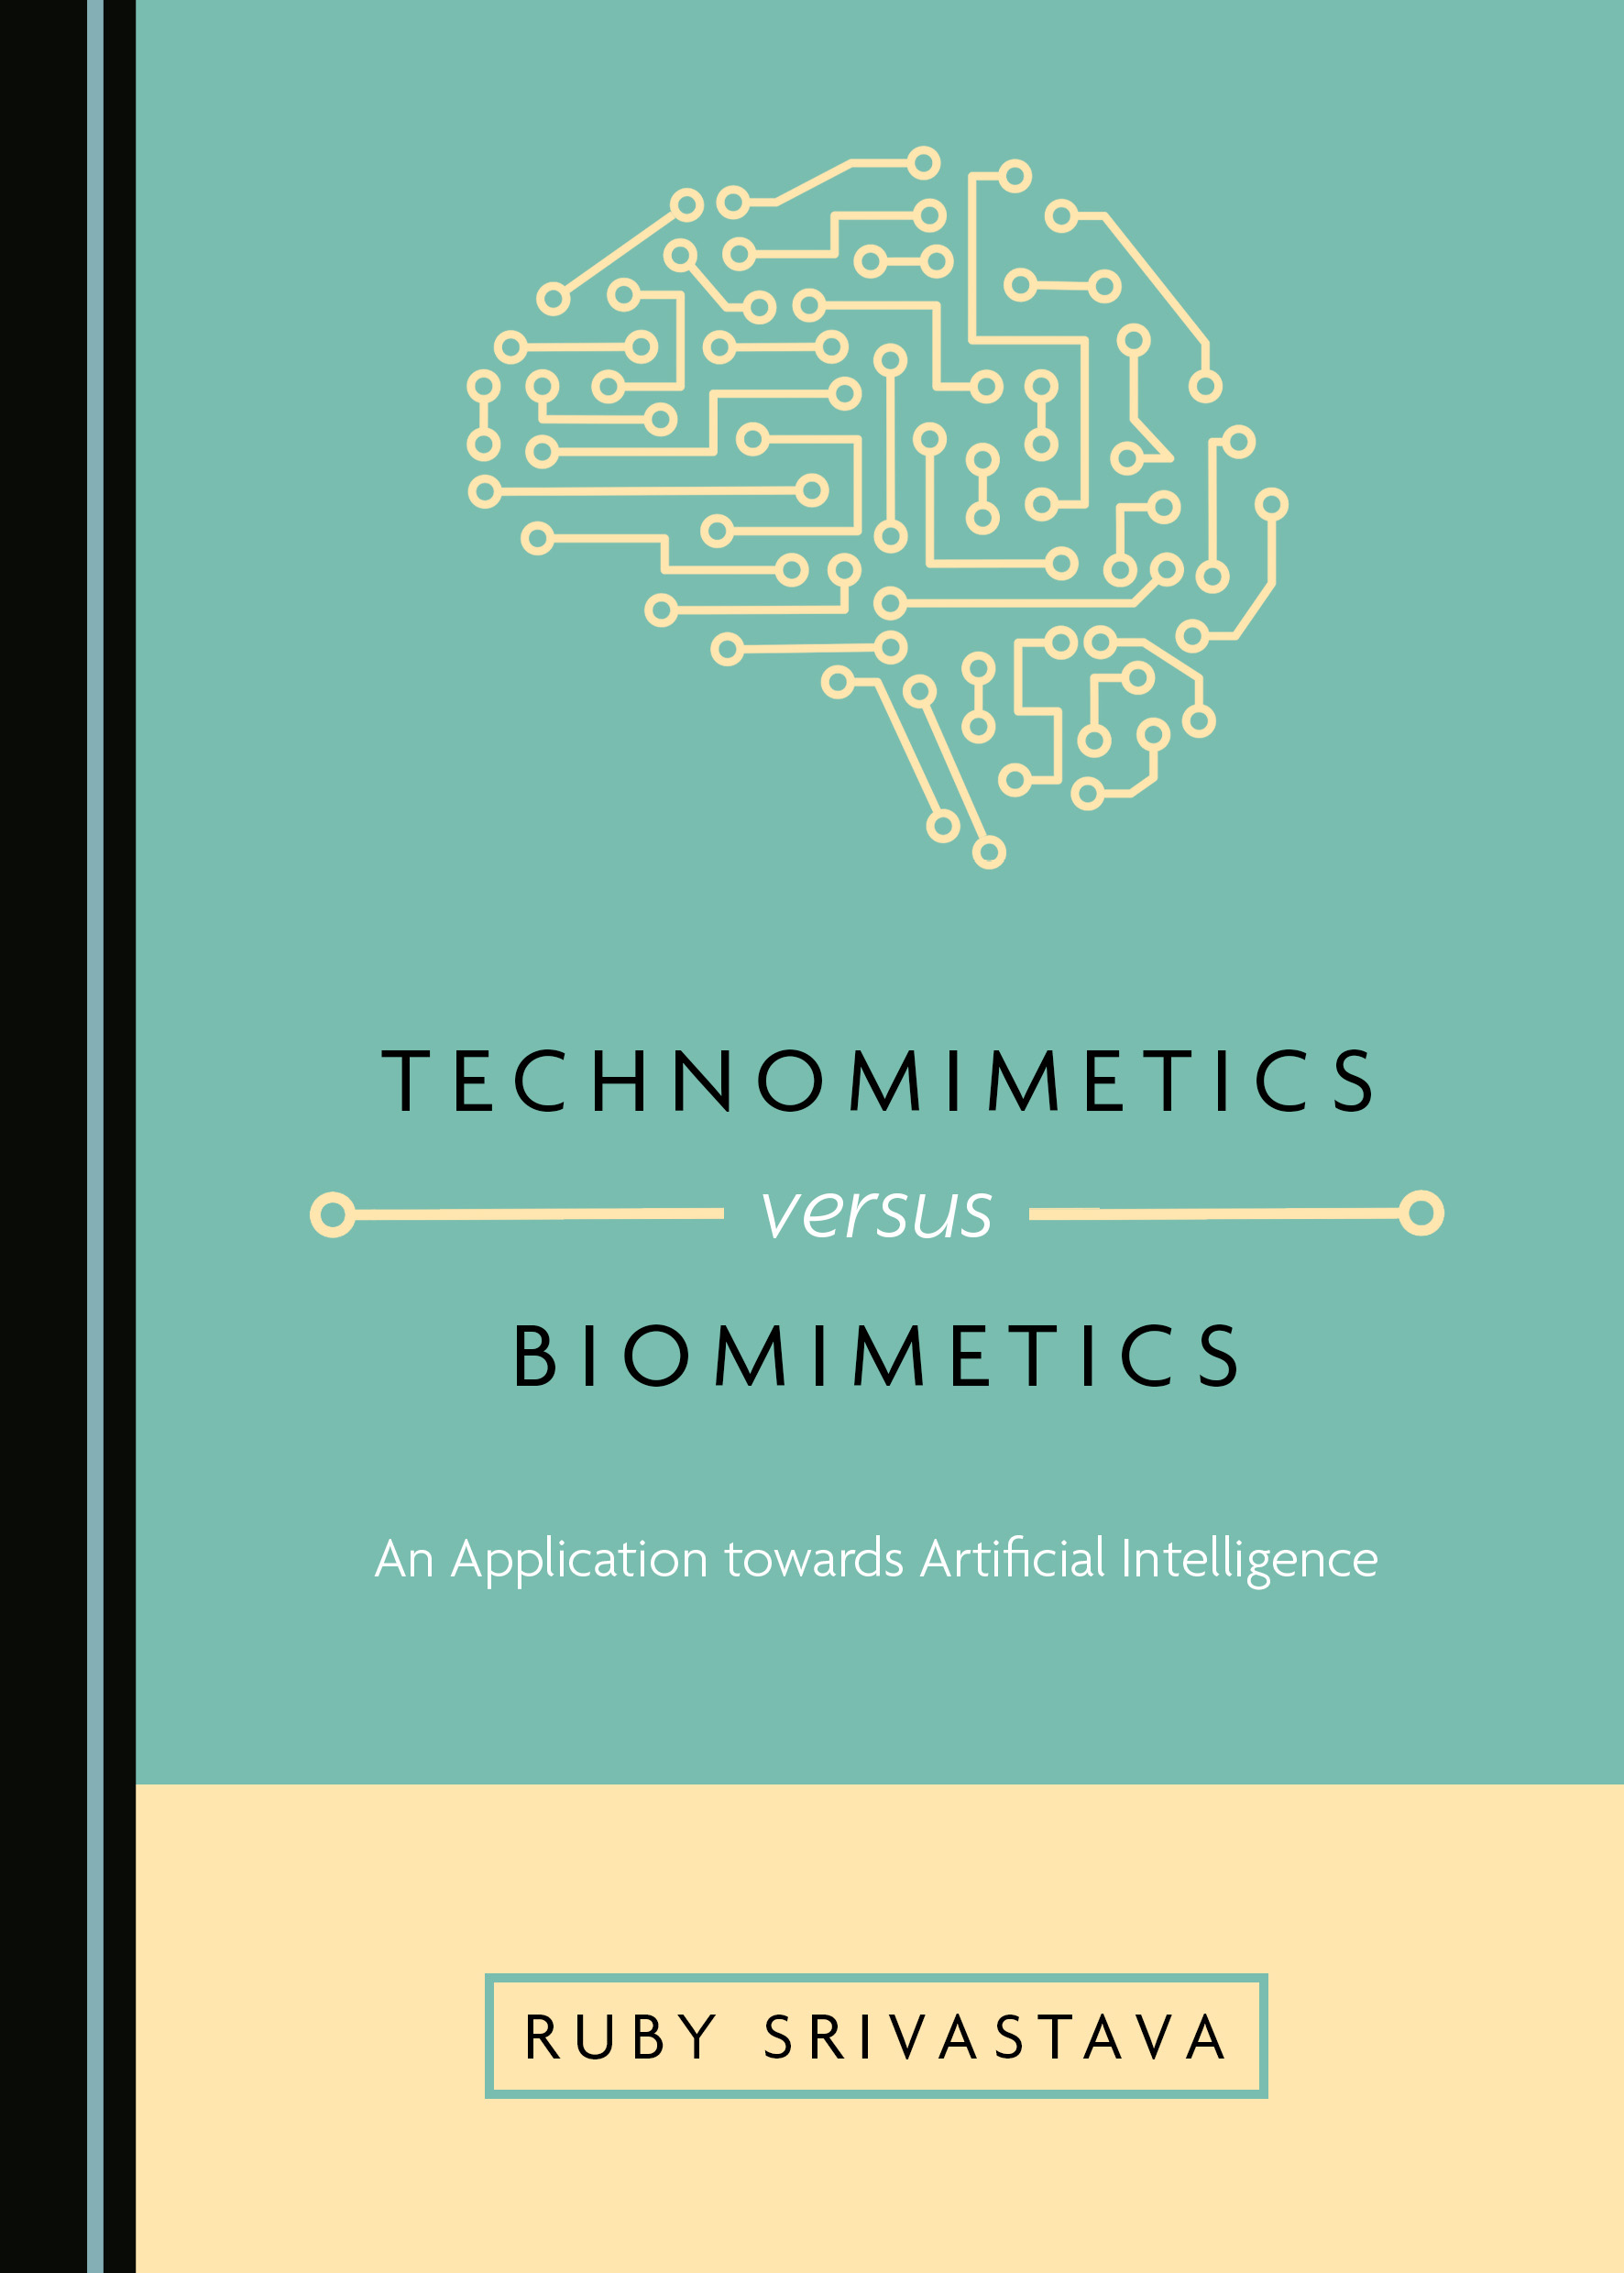 Technomimetics versus Biomimetics: An Application towards Artificial Intelligence